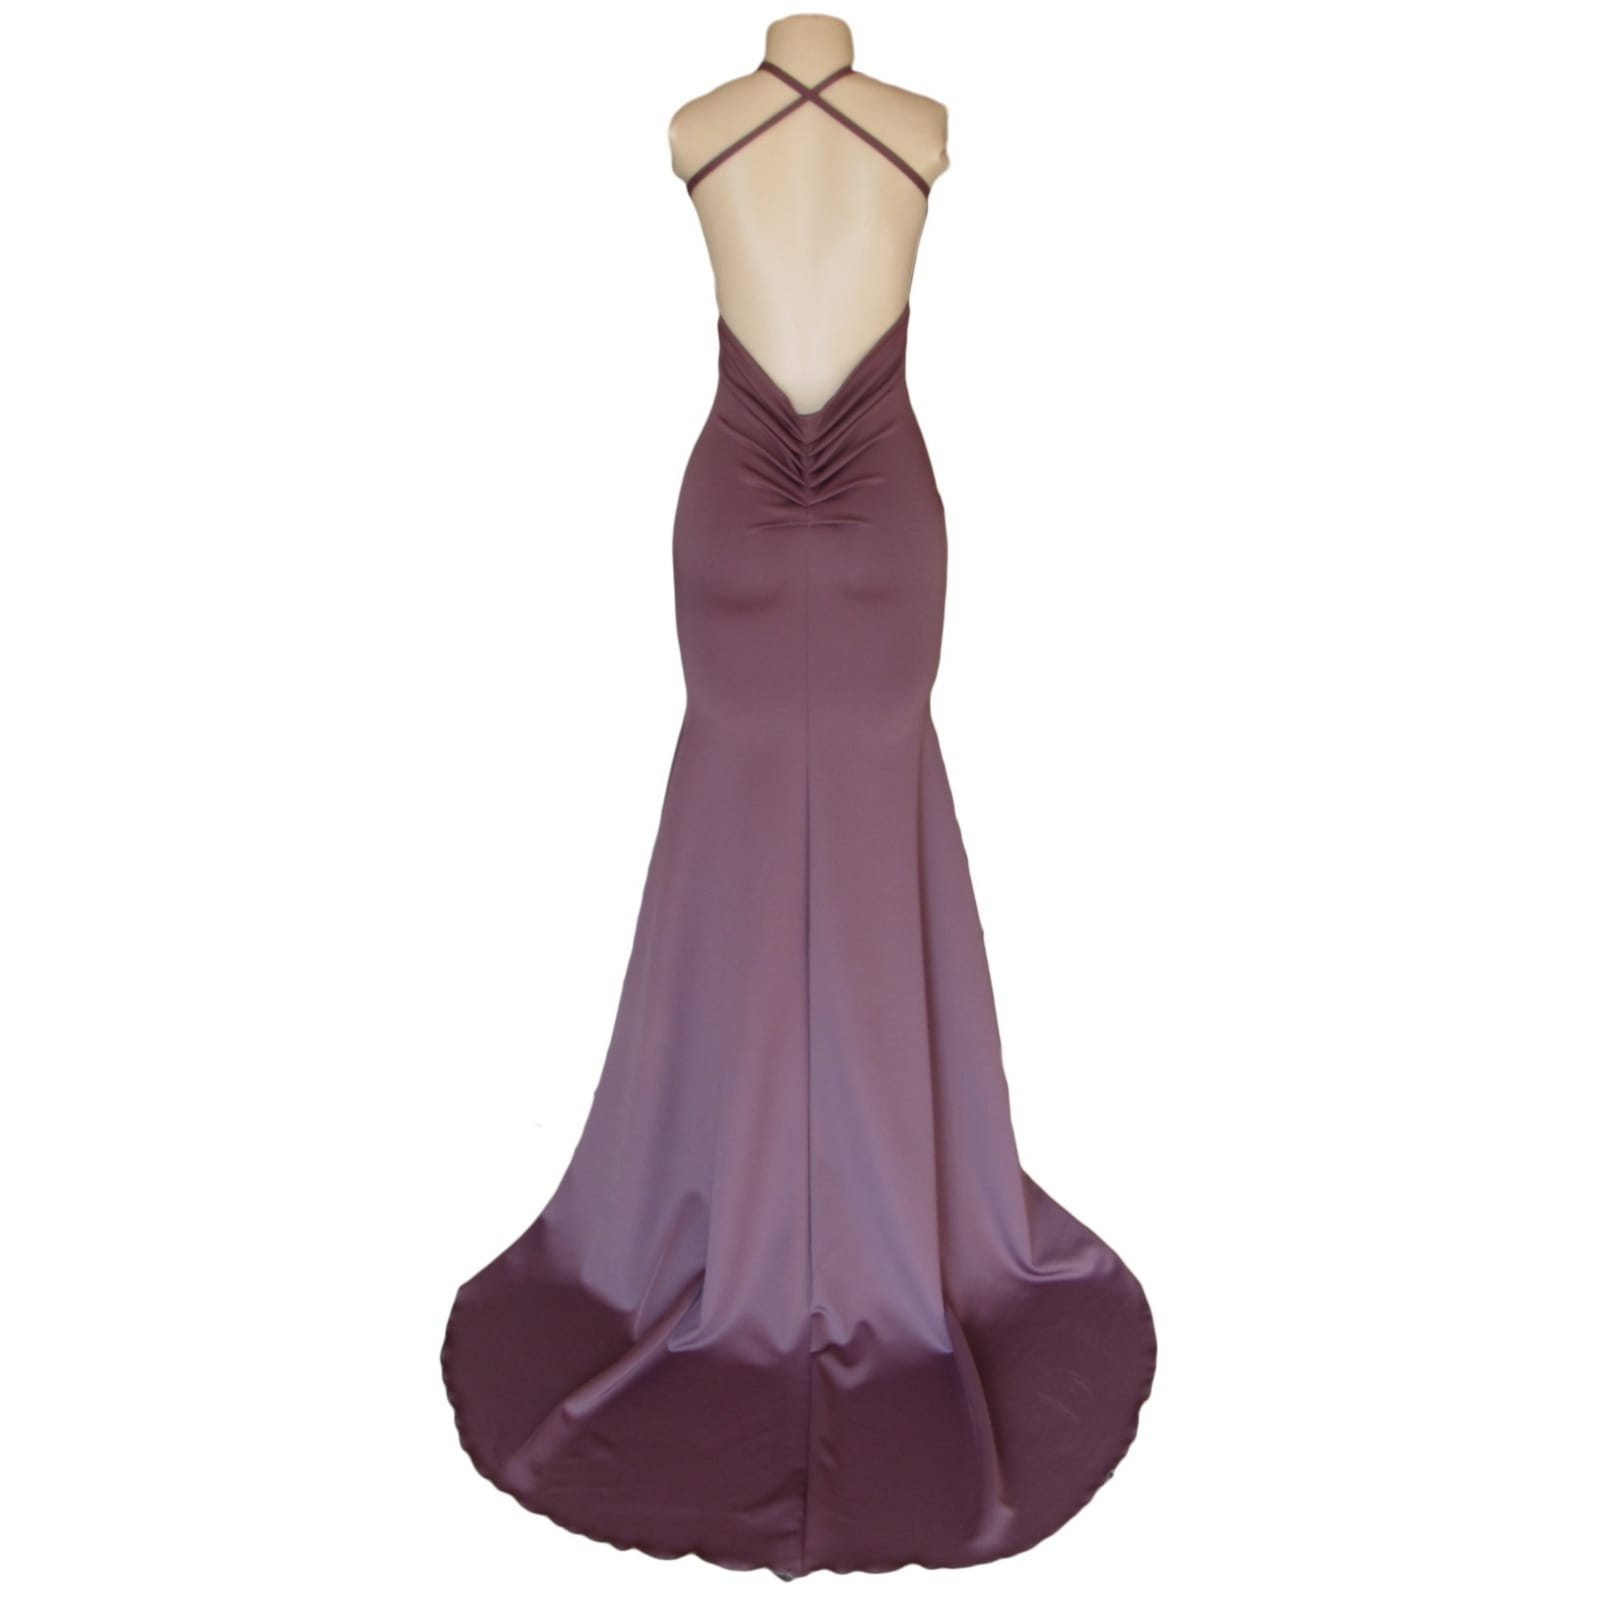 Mauve soft mermaid prom dress 7 mauve soft mermaid prom dress with a low open pleated back with cross strap with a train and a teardrop cleavage opening.